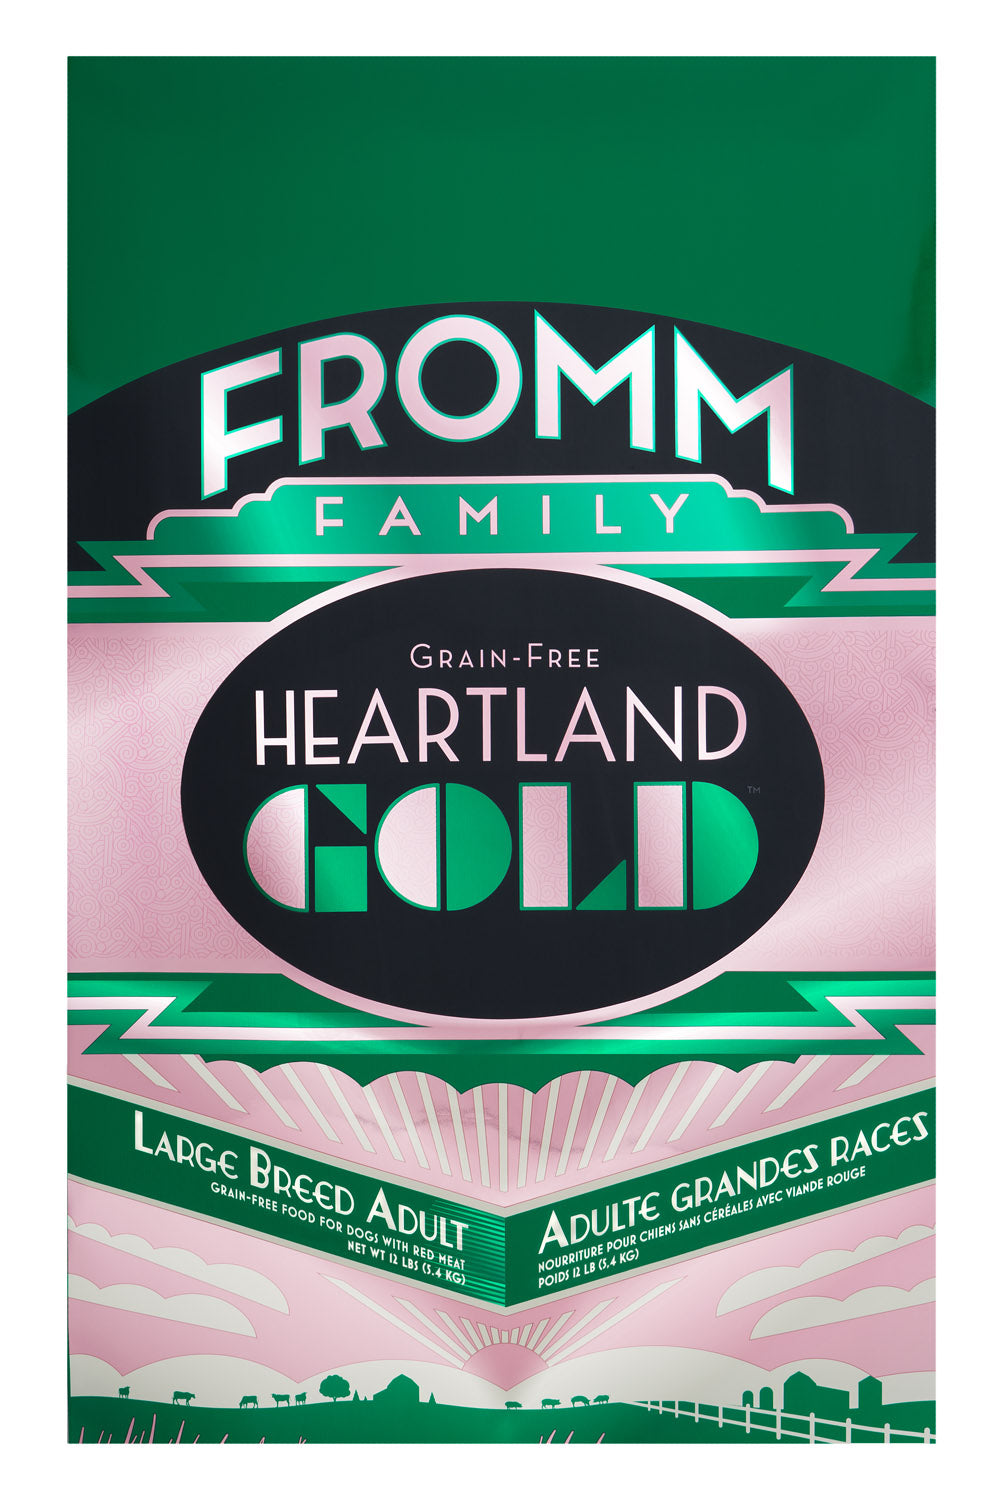 Fromm Heartland Gold Grain-Free Large Breed Adult Dry Dog Food 12-lb at NJPetSupply.com